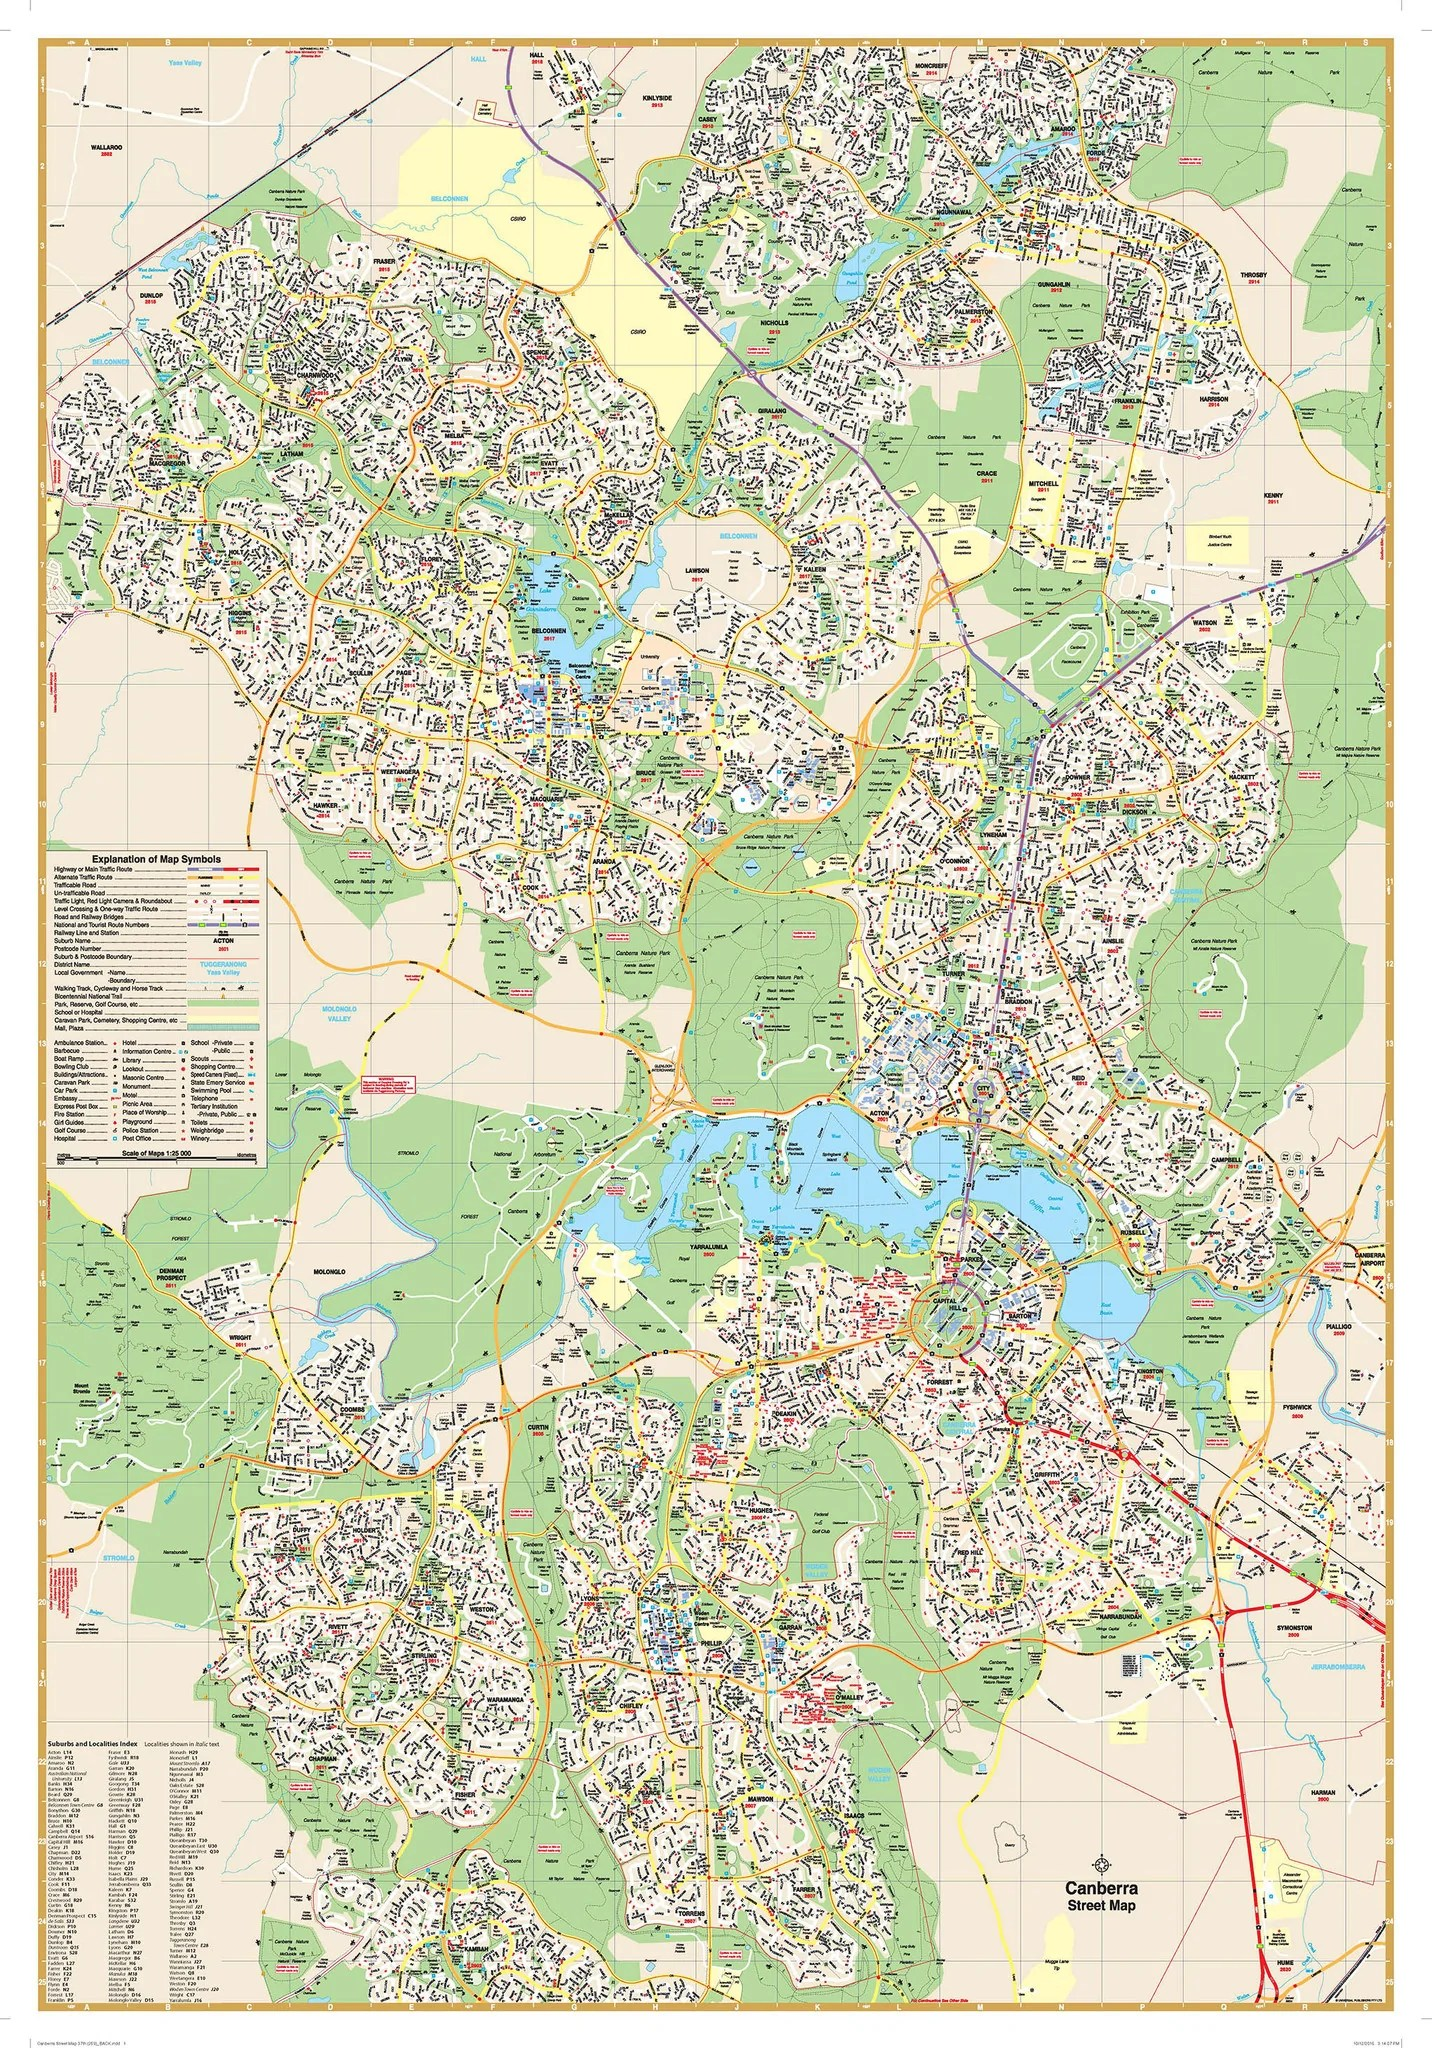 Map Of Canberra Canberra Ubd 259 Map 690 X 1000mm Laminated Wall Map